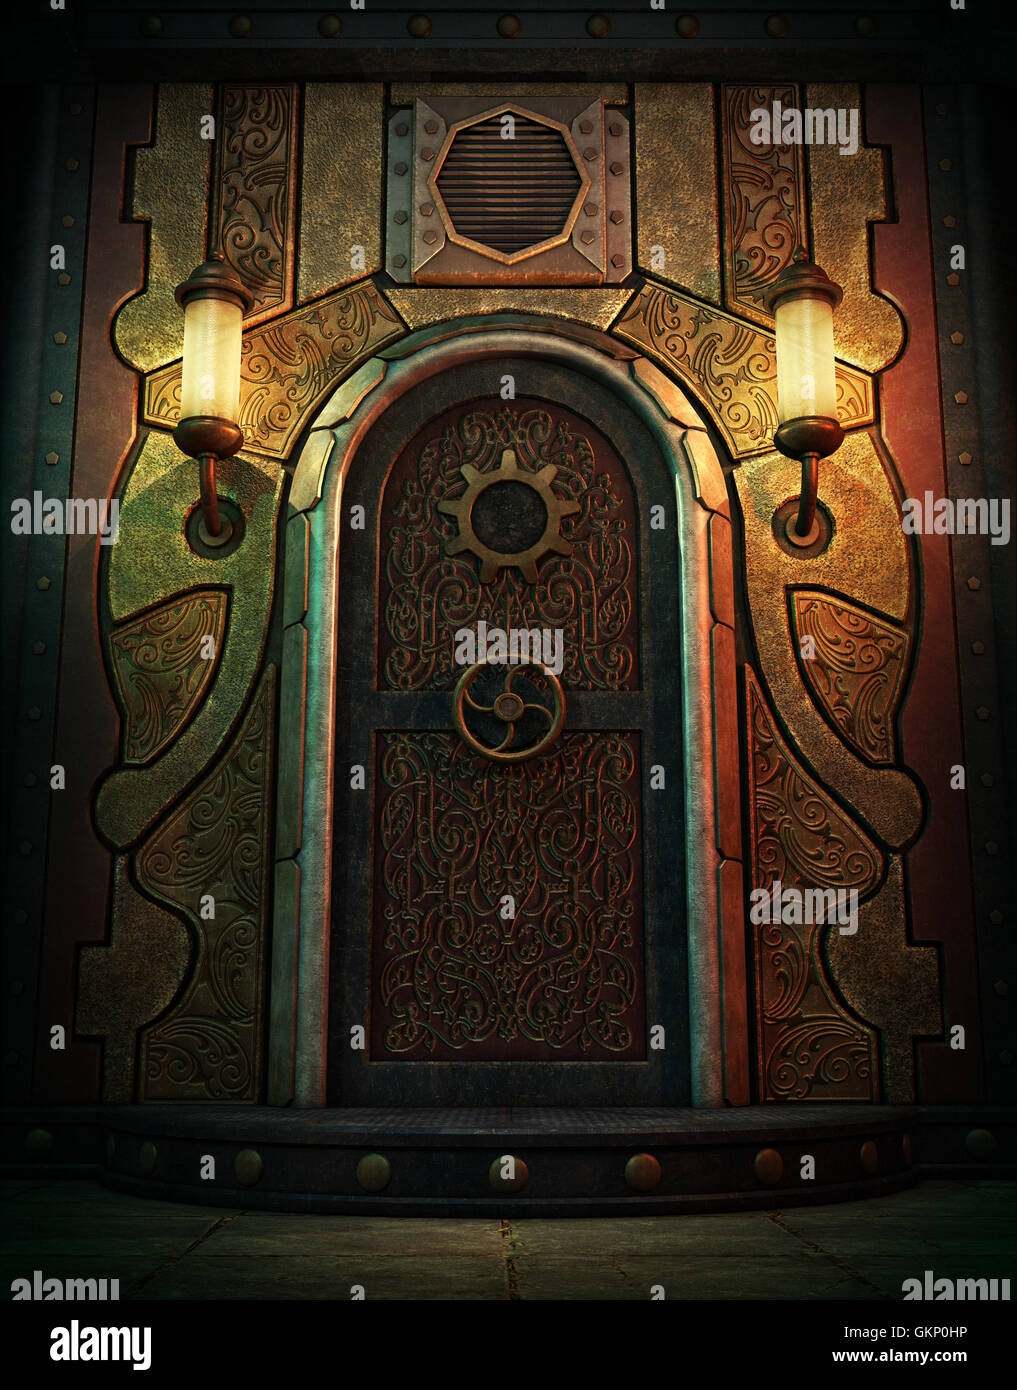 3d computer graphics of a vault door in Steampunk style - Stock Image